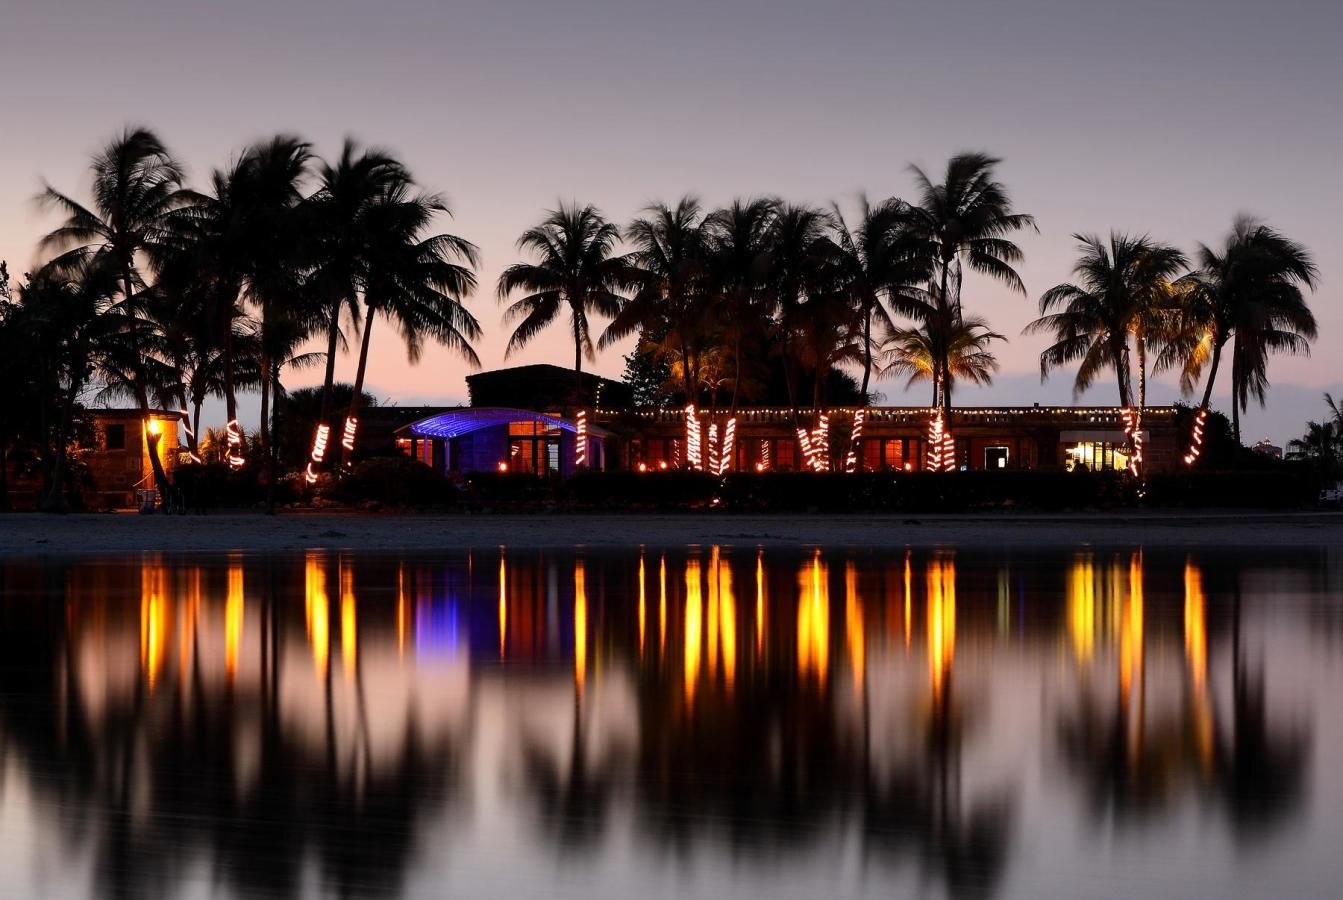 Matheson Hammock Park Waterview at Night